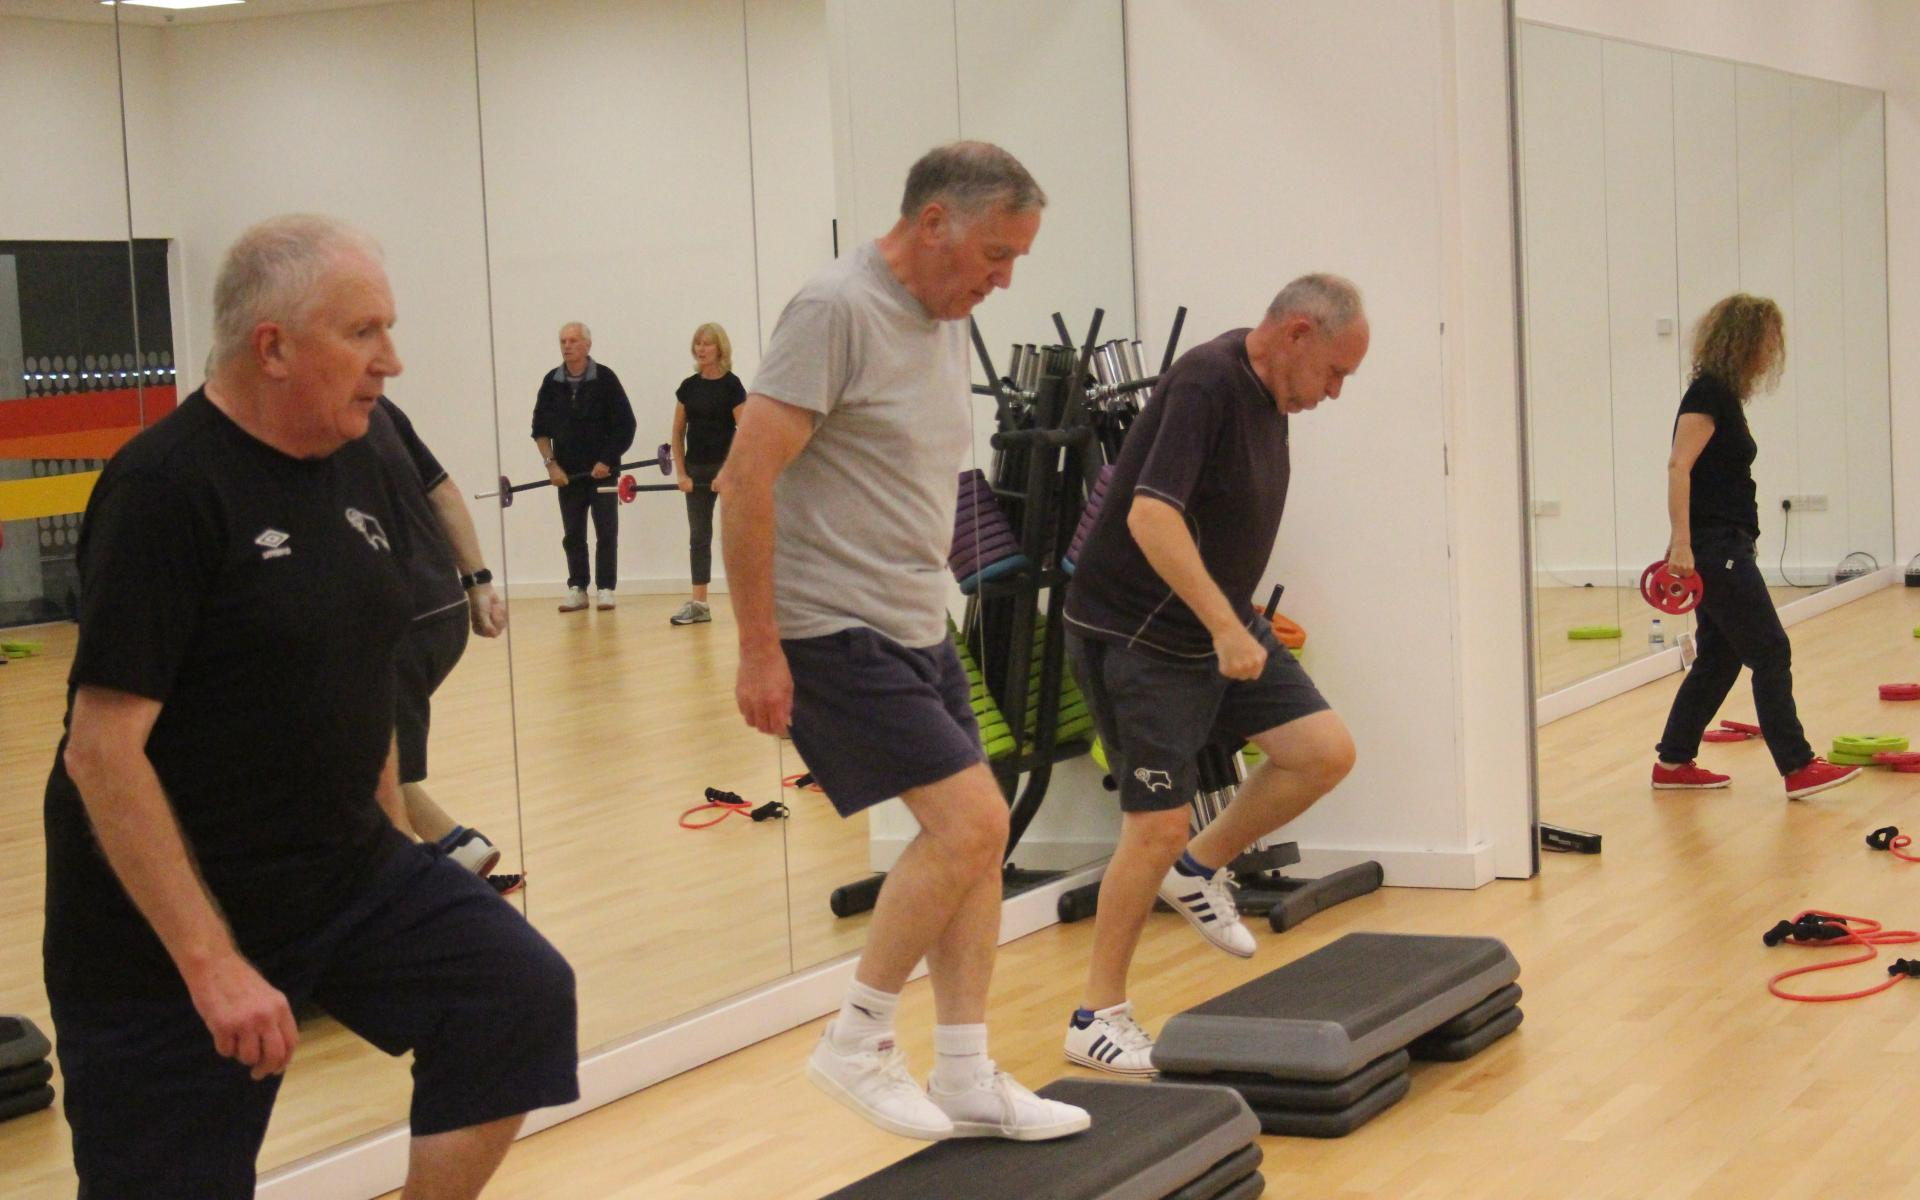 Over 50s Fitness session